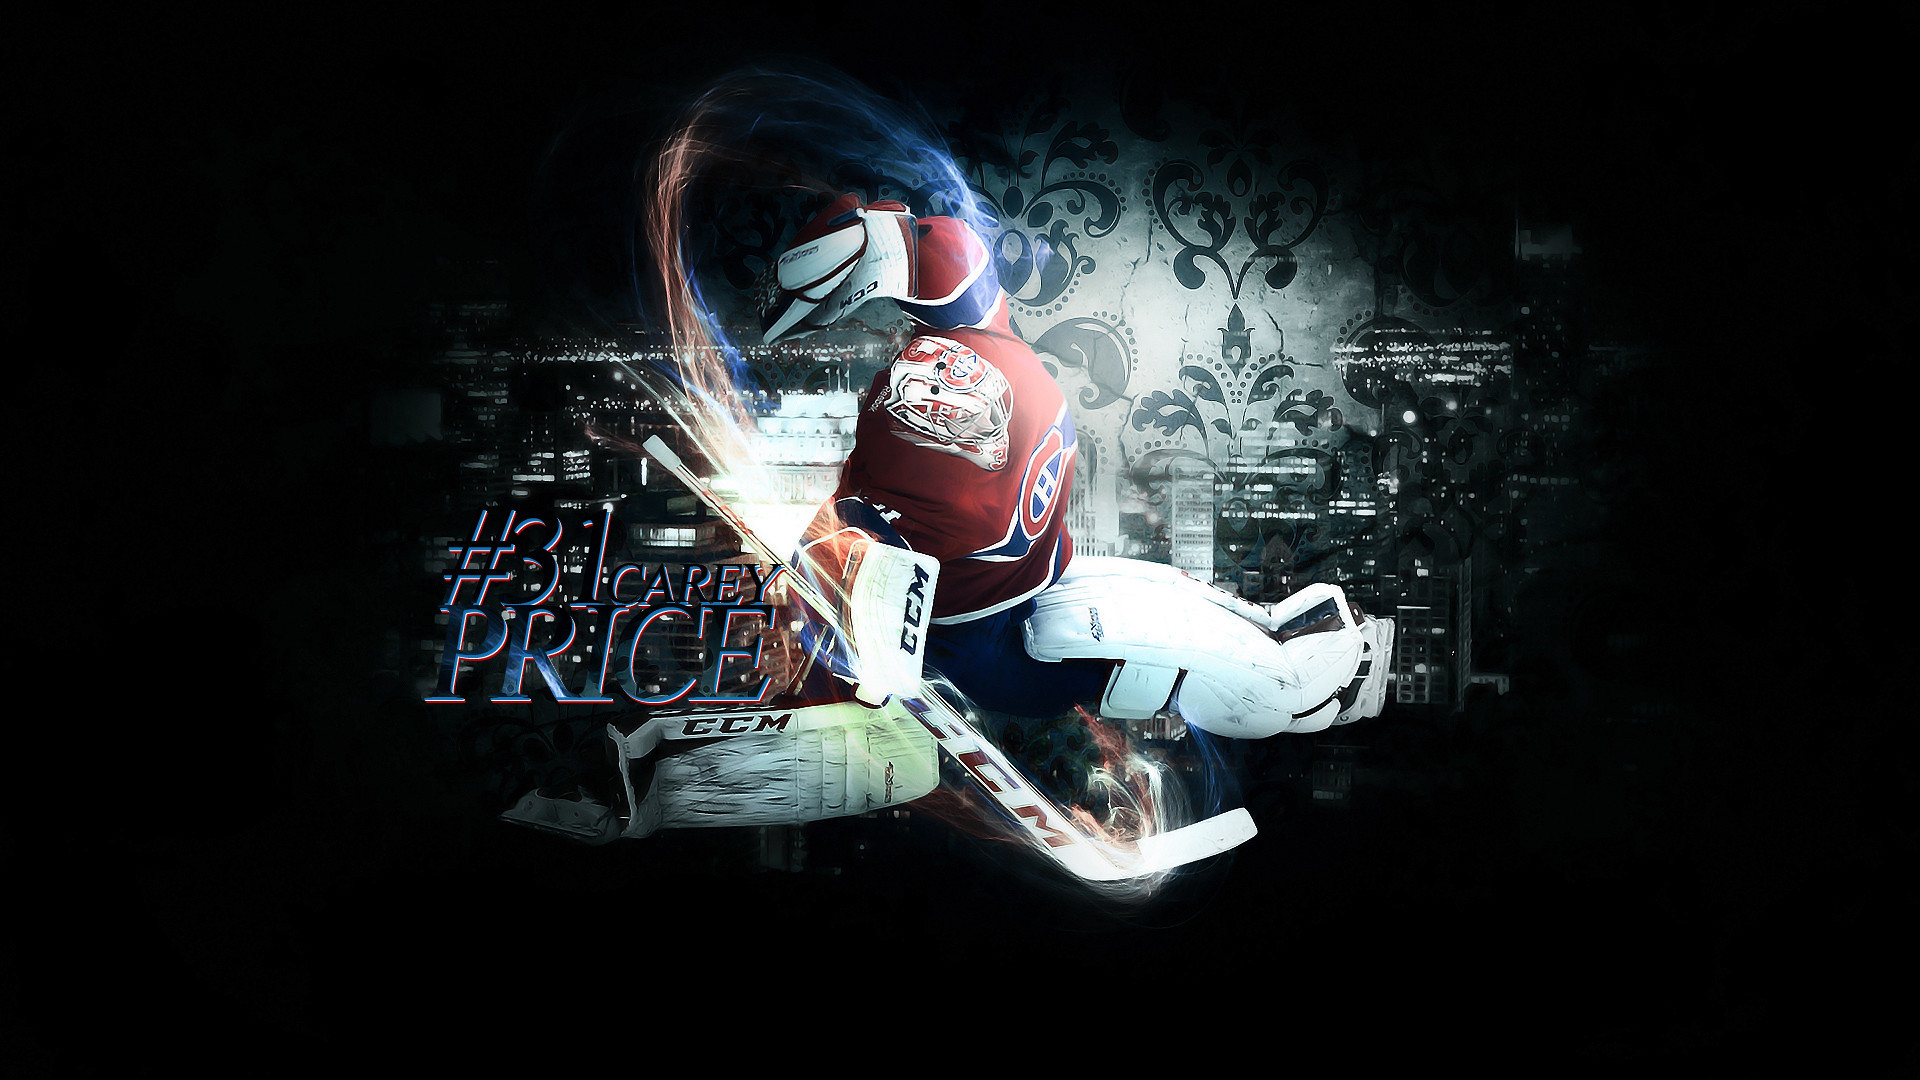 1920x1080 Stoked for the season I made a Carey Price wallpaper, yes reddit I made it  stop being so skeptical.